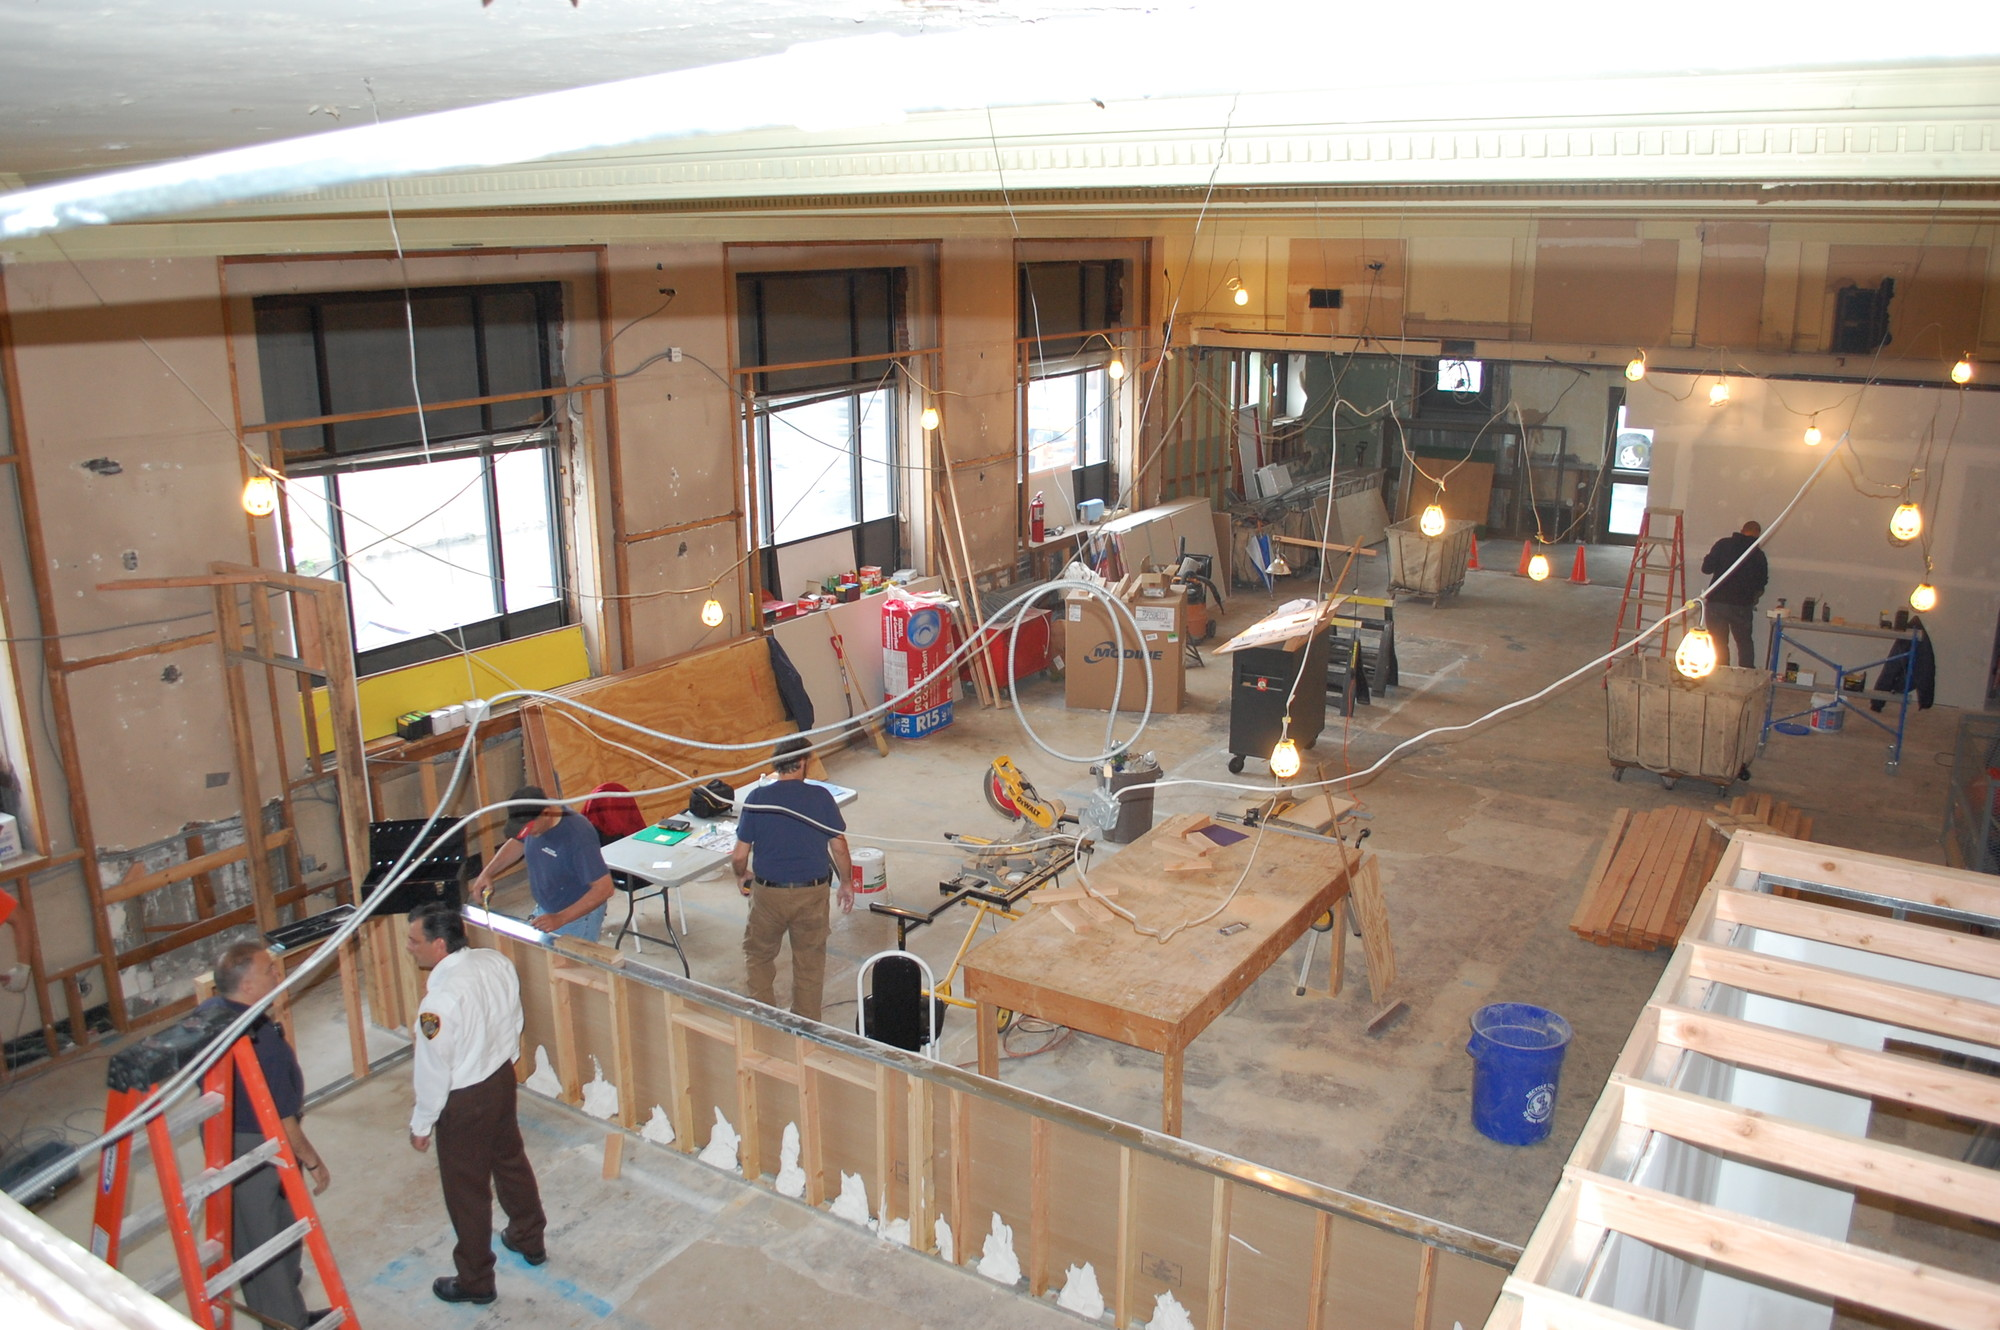 A view of the courthouse construction from the mezzanine level, where the judge's chambers and a conference room will be located.